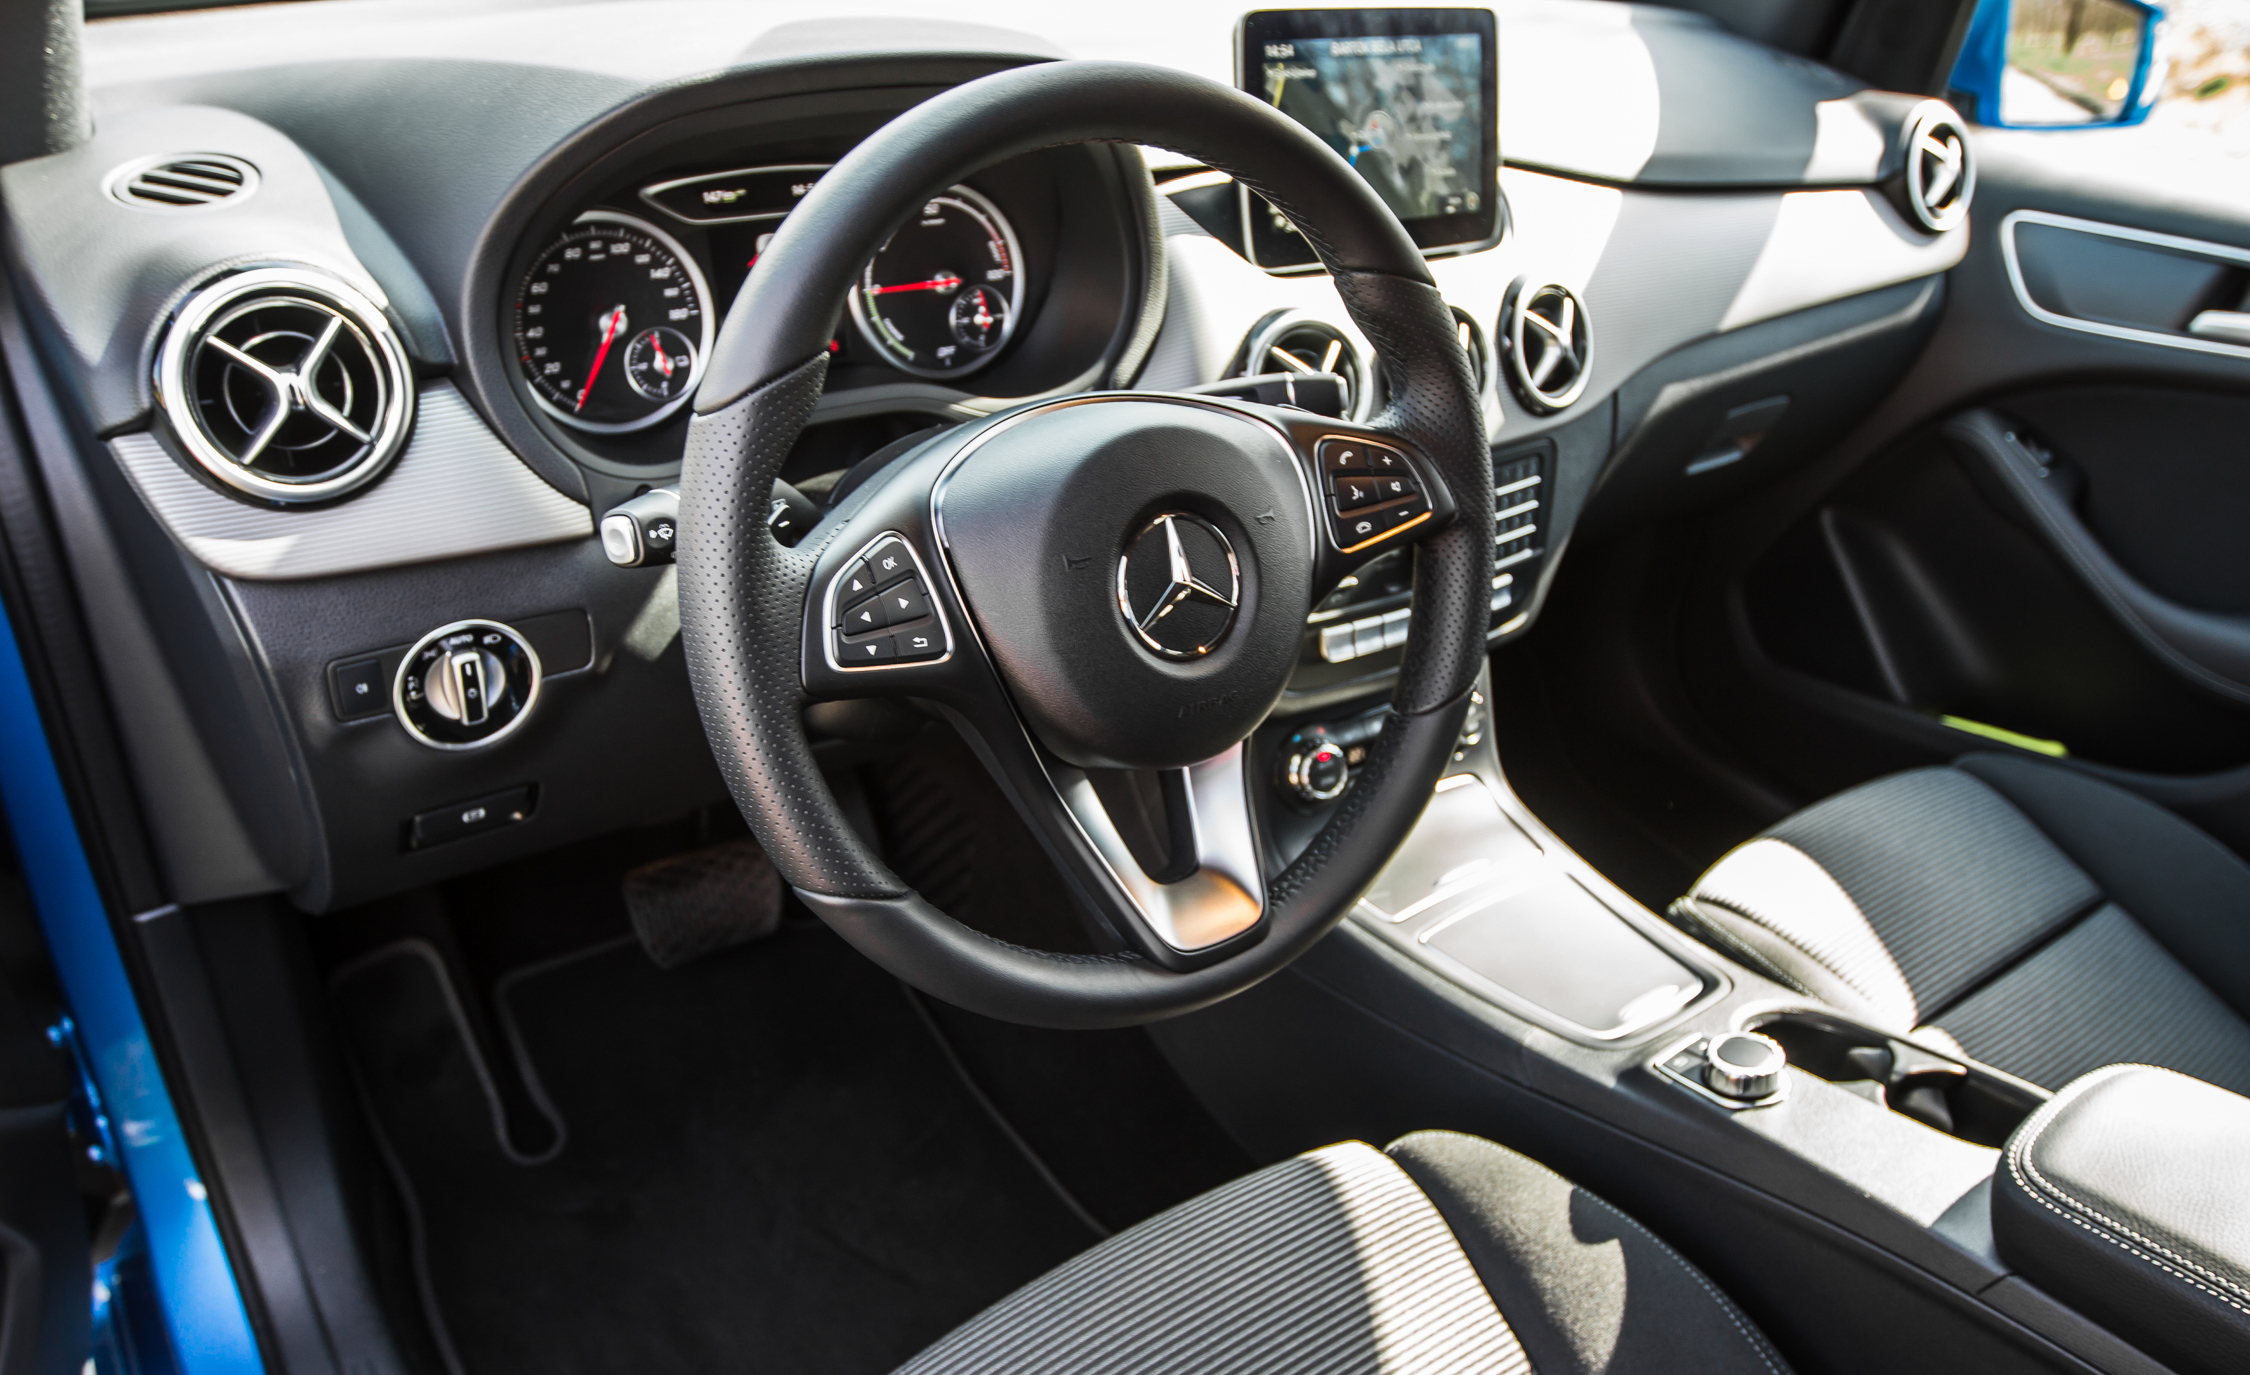 2017 Mercedes Benz B250e Interior View Driver Steering (View 3 of 24)